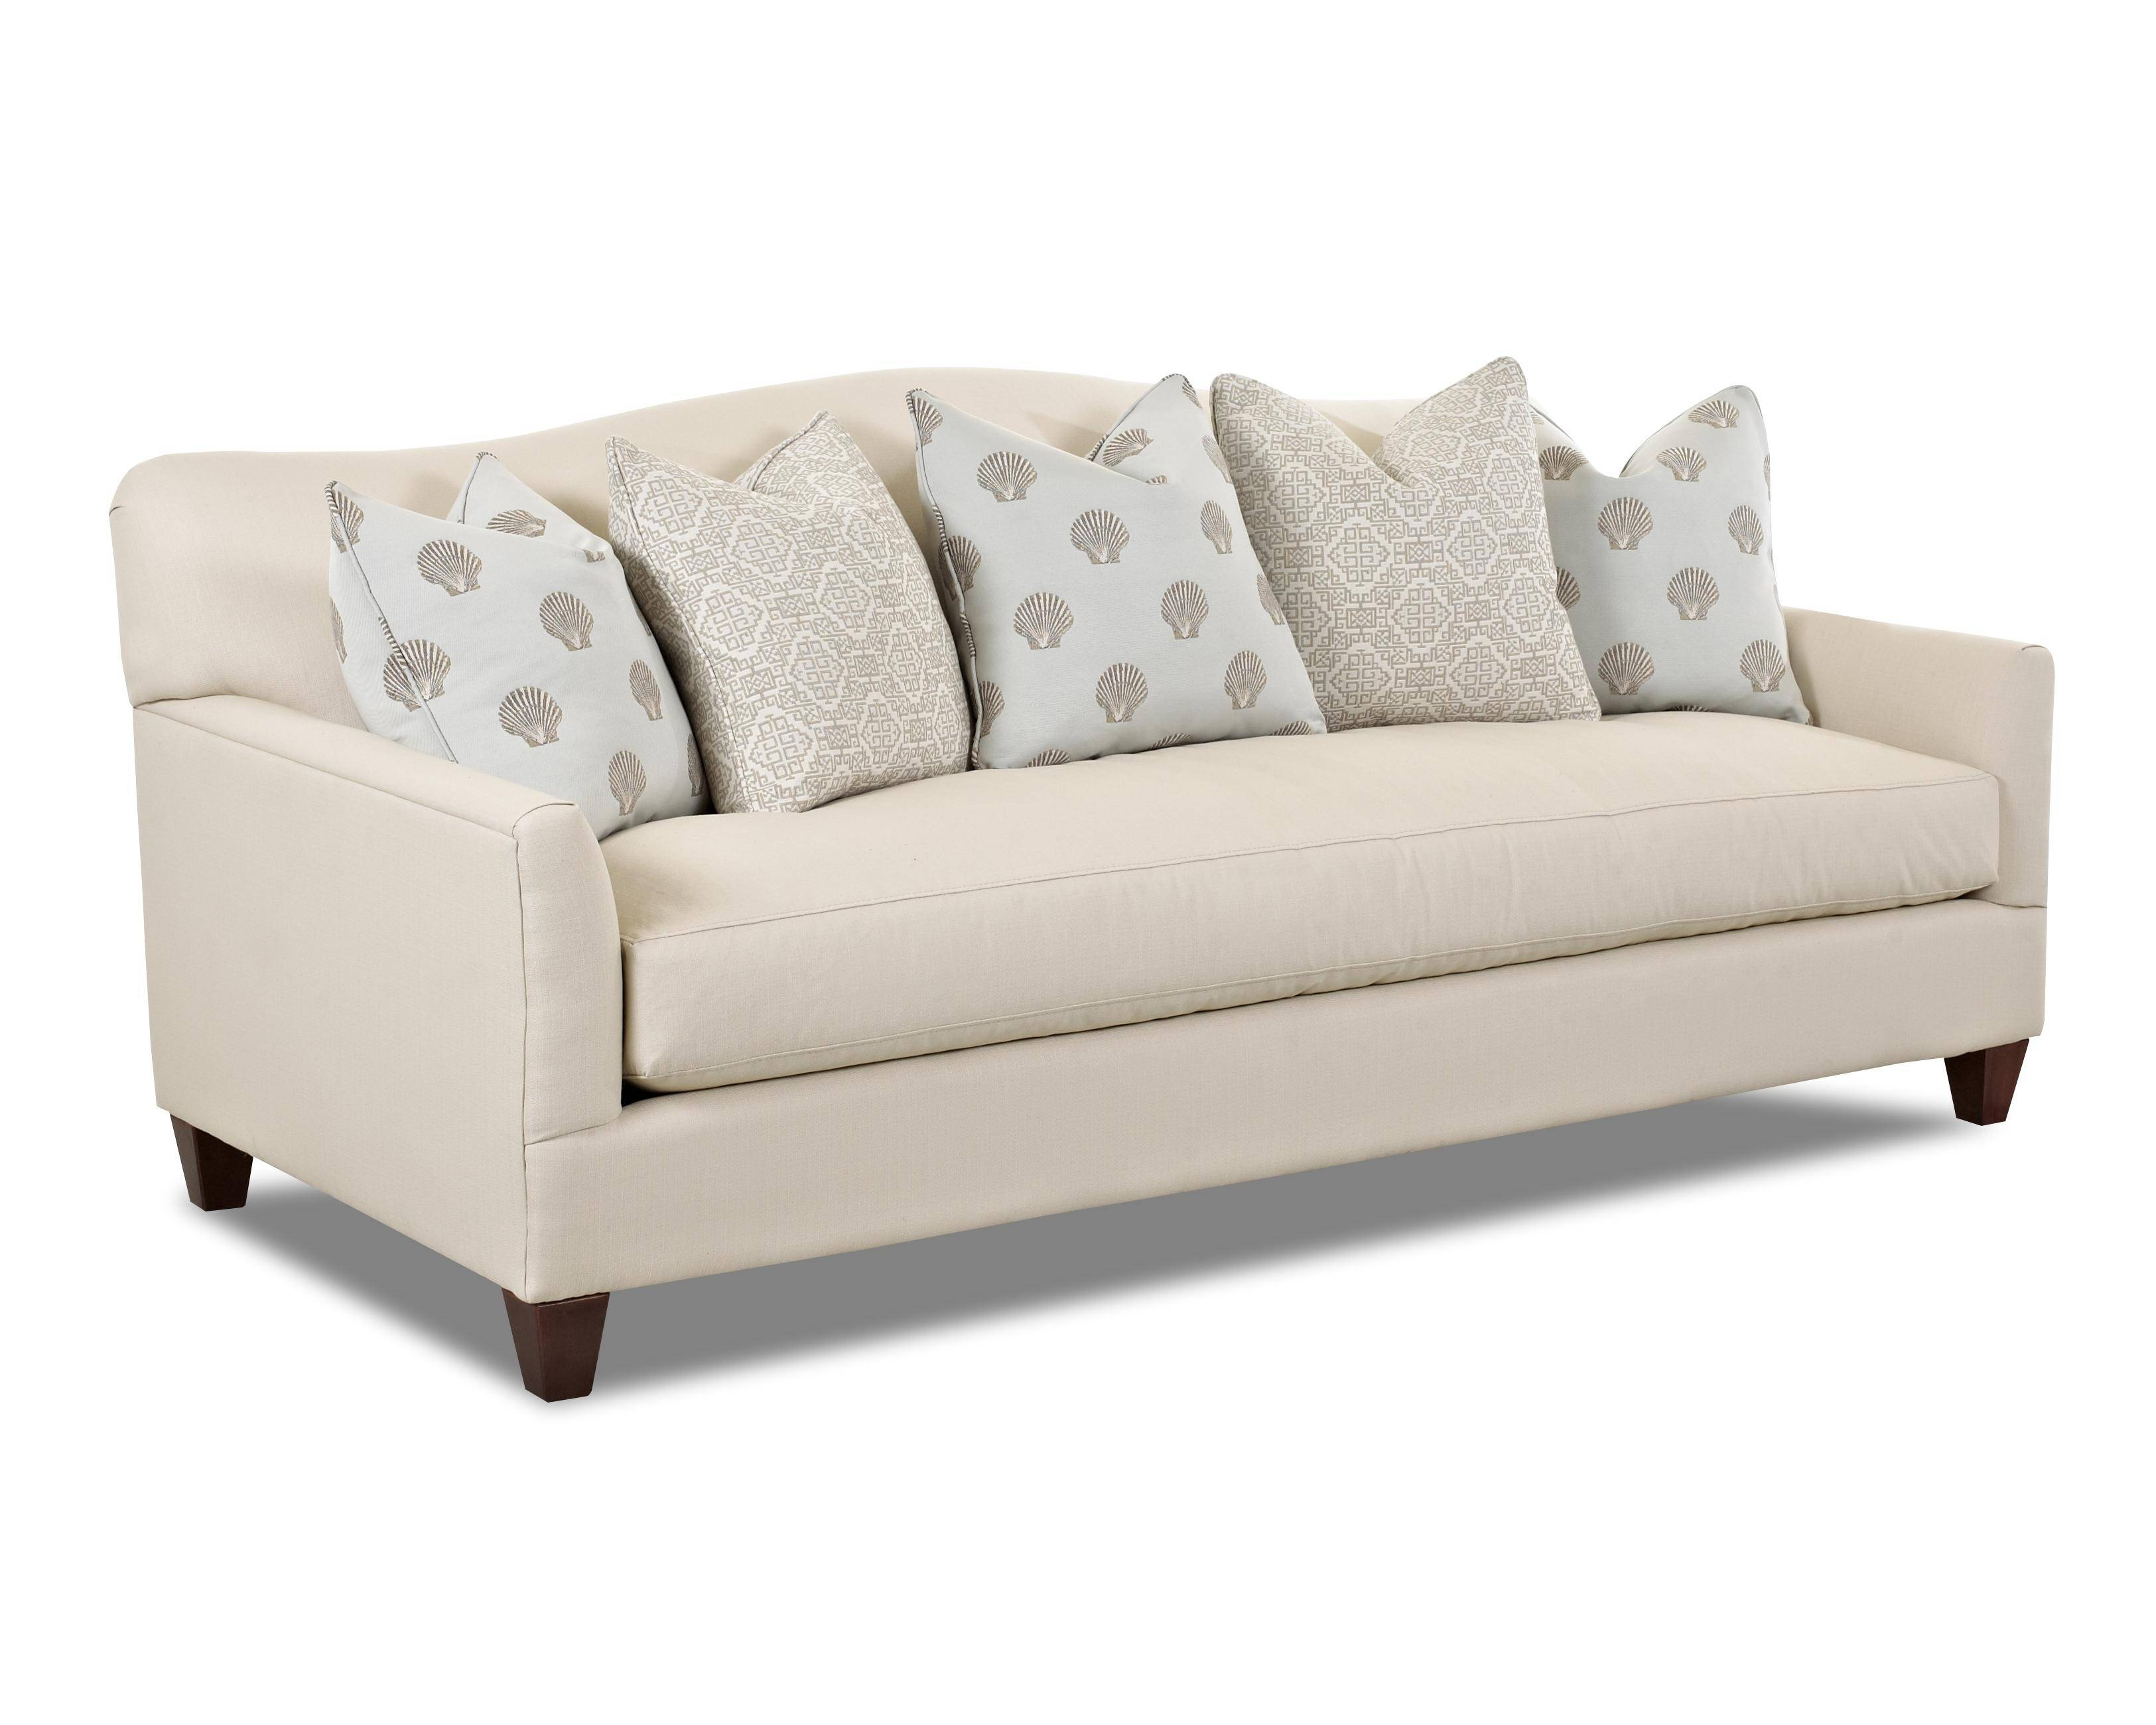 Contemporary Stationary Sofa With Bench Seat Cushion And Camel with regard to Bench Cushion Sofas (Image 3 of 15)